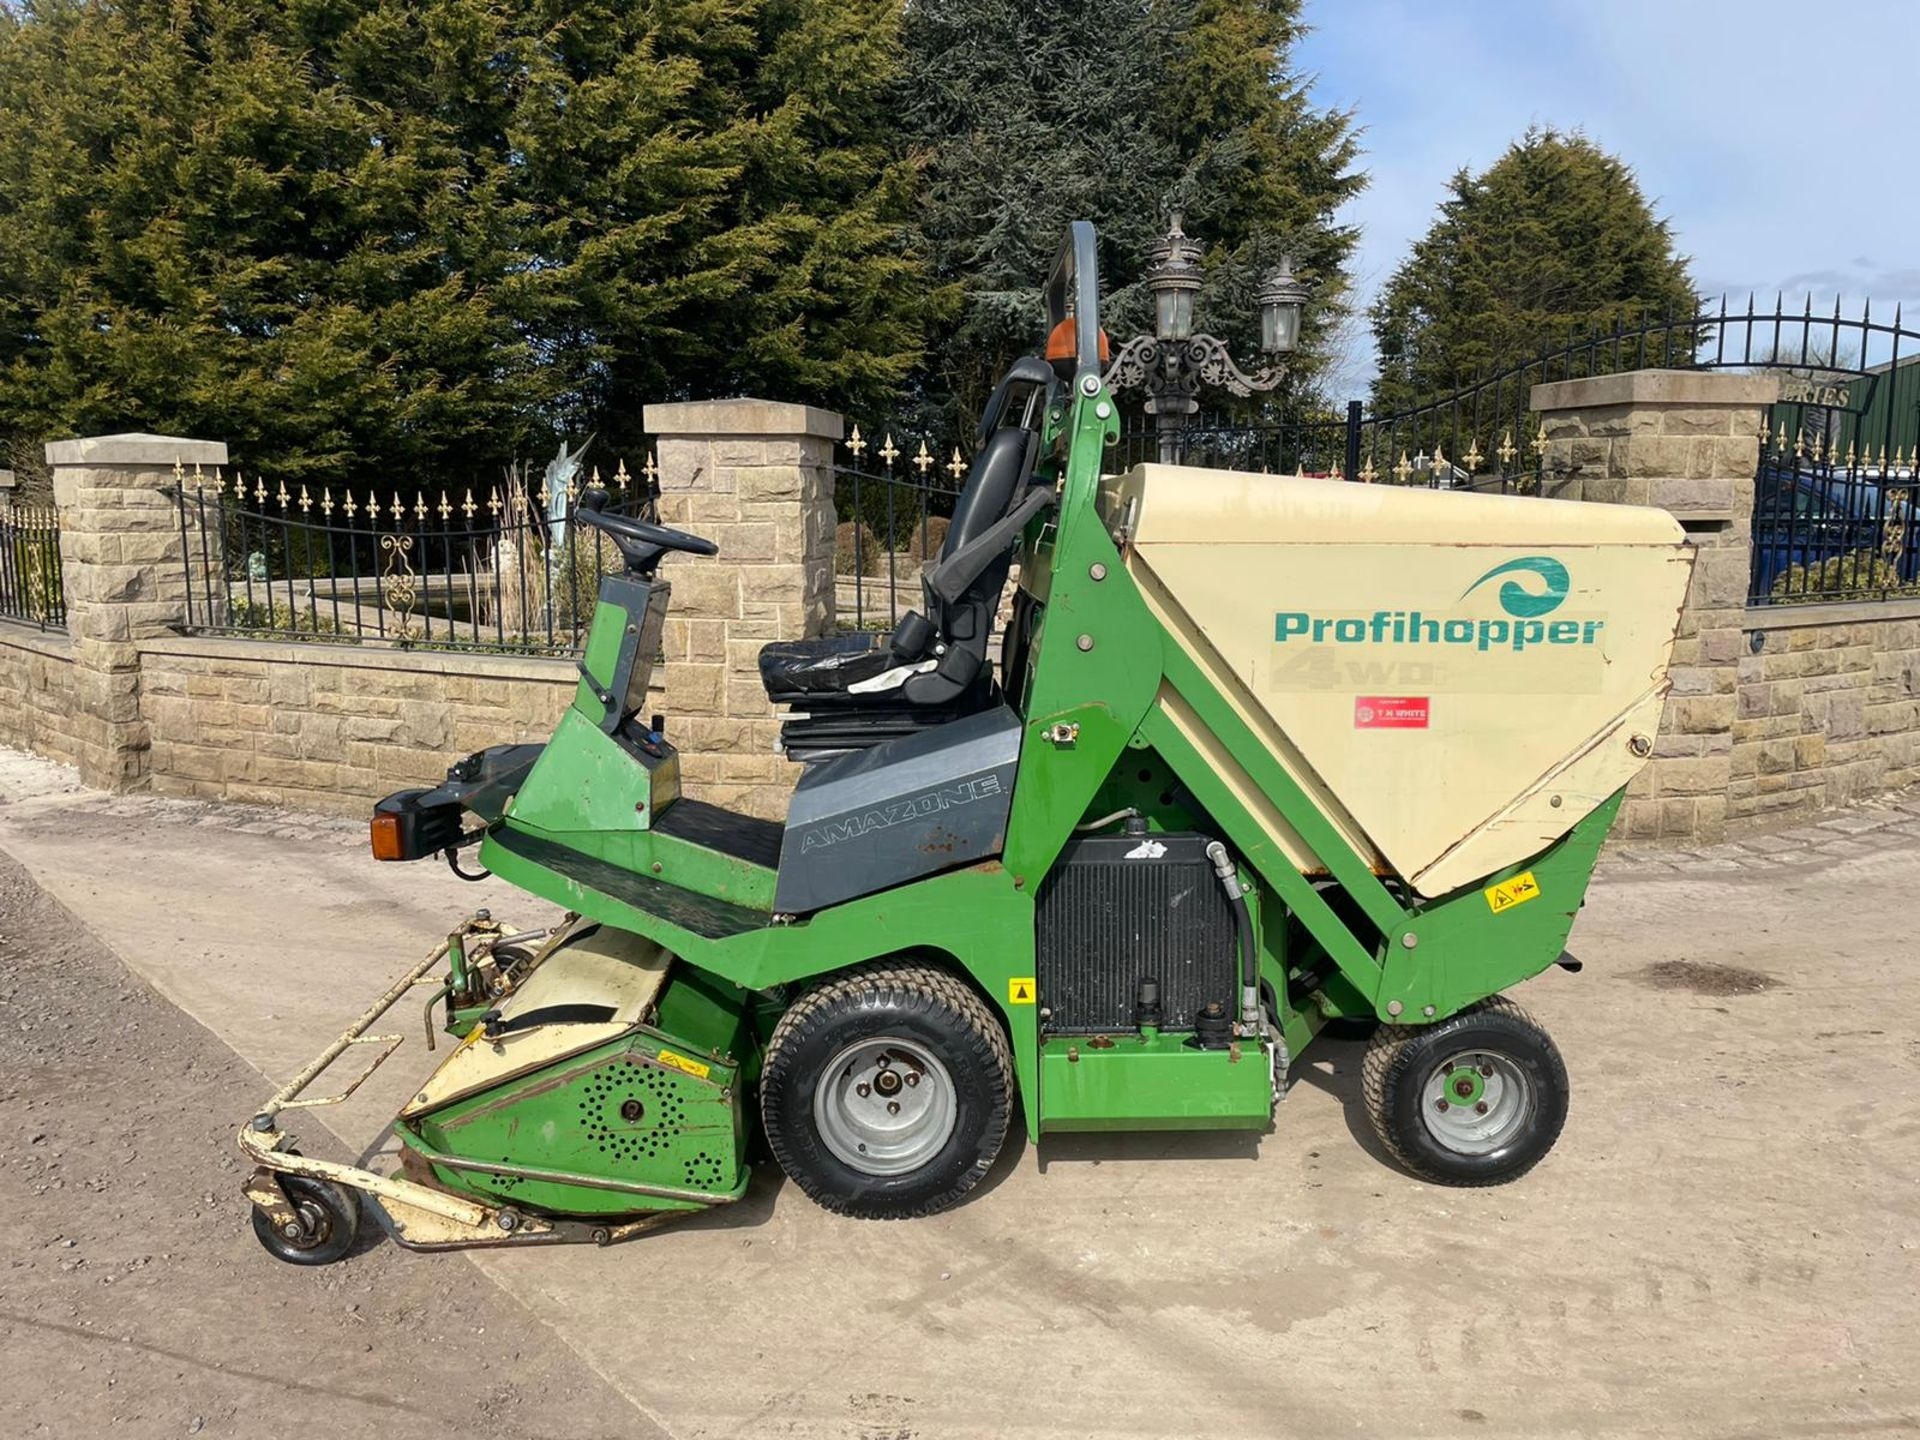 2012 AMAZONE PROFIHOPPER RIDE ON MOWER, RUNS, DRIVES AND CUTS, IN GOOD CONDITION *PLUS VAT* - Image 5 of 14